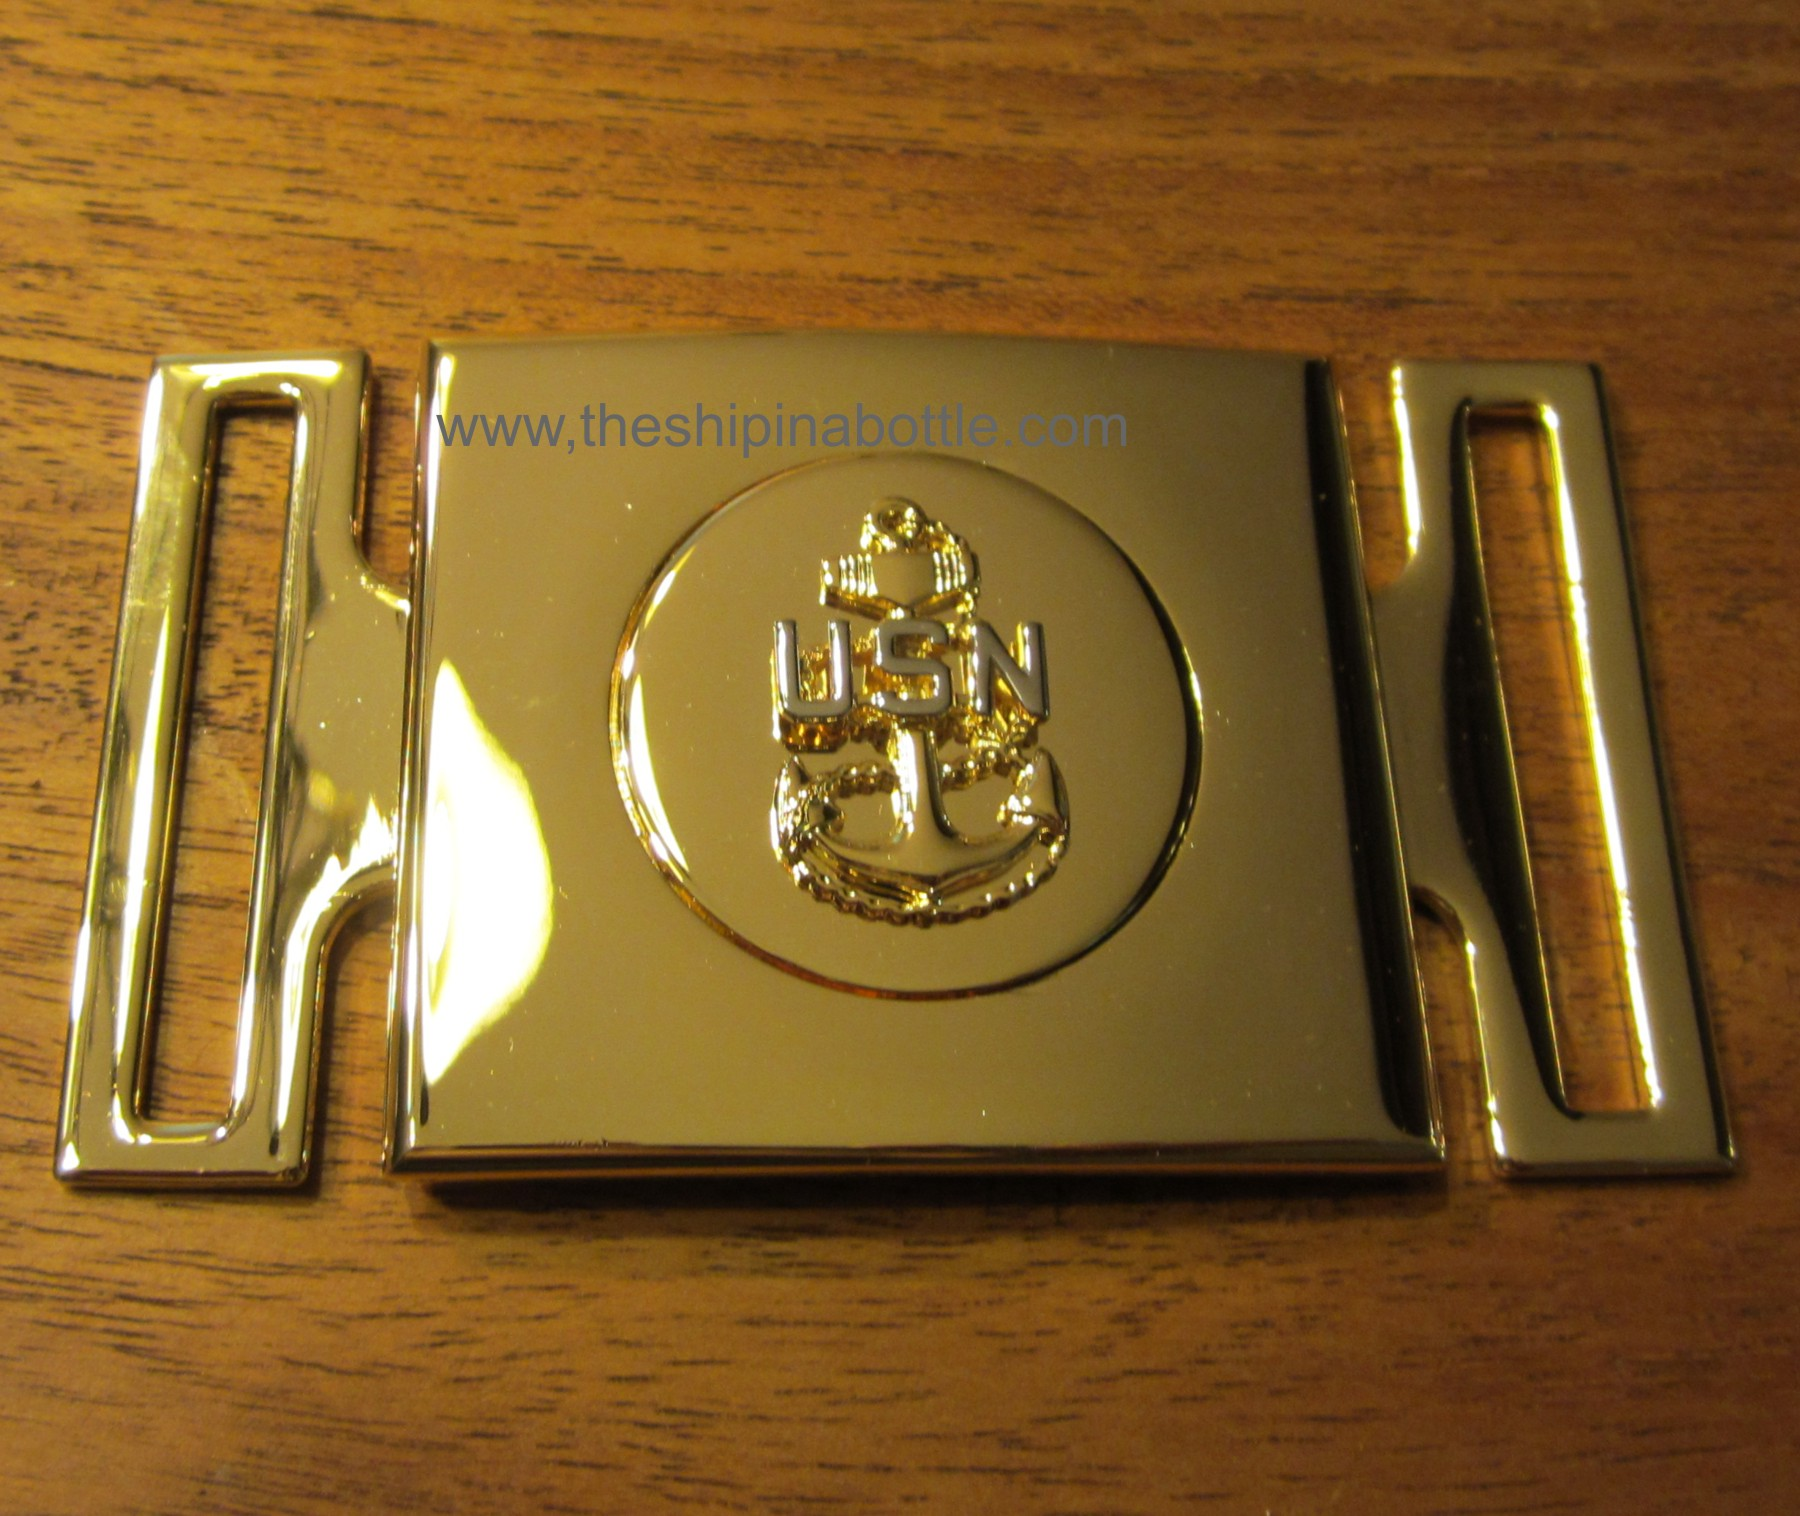 Newly Authorized CPO Buckle for Belt worn with CPO Cutlass